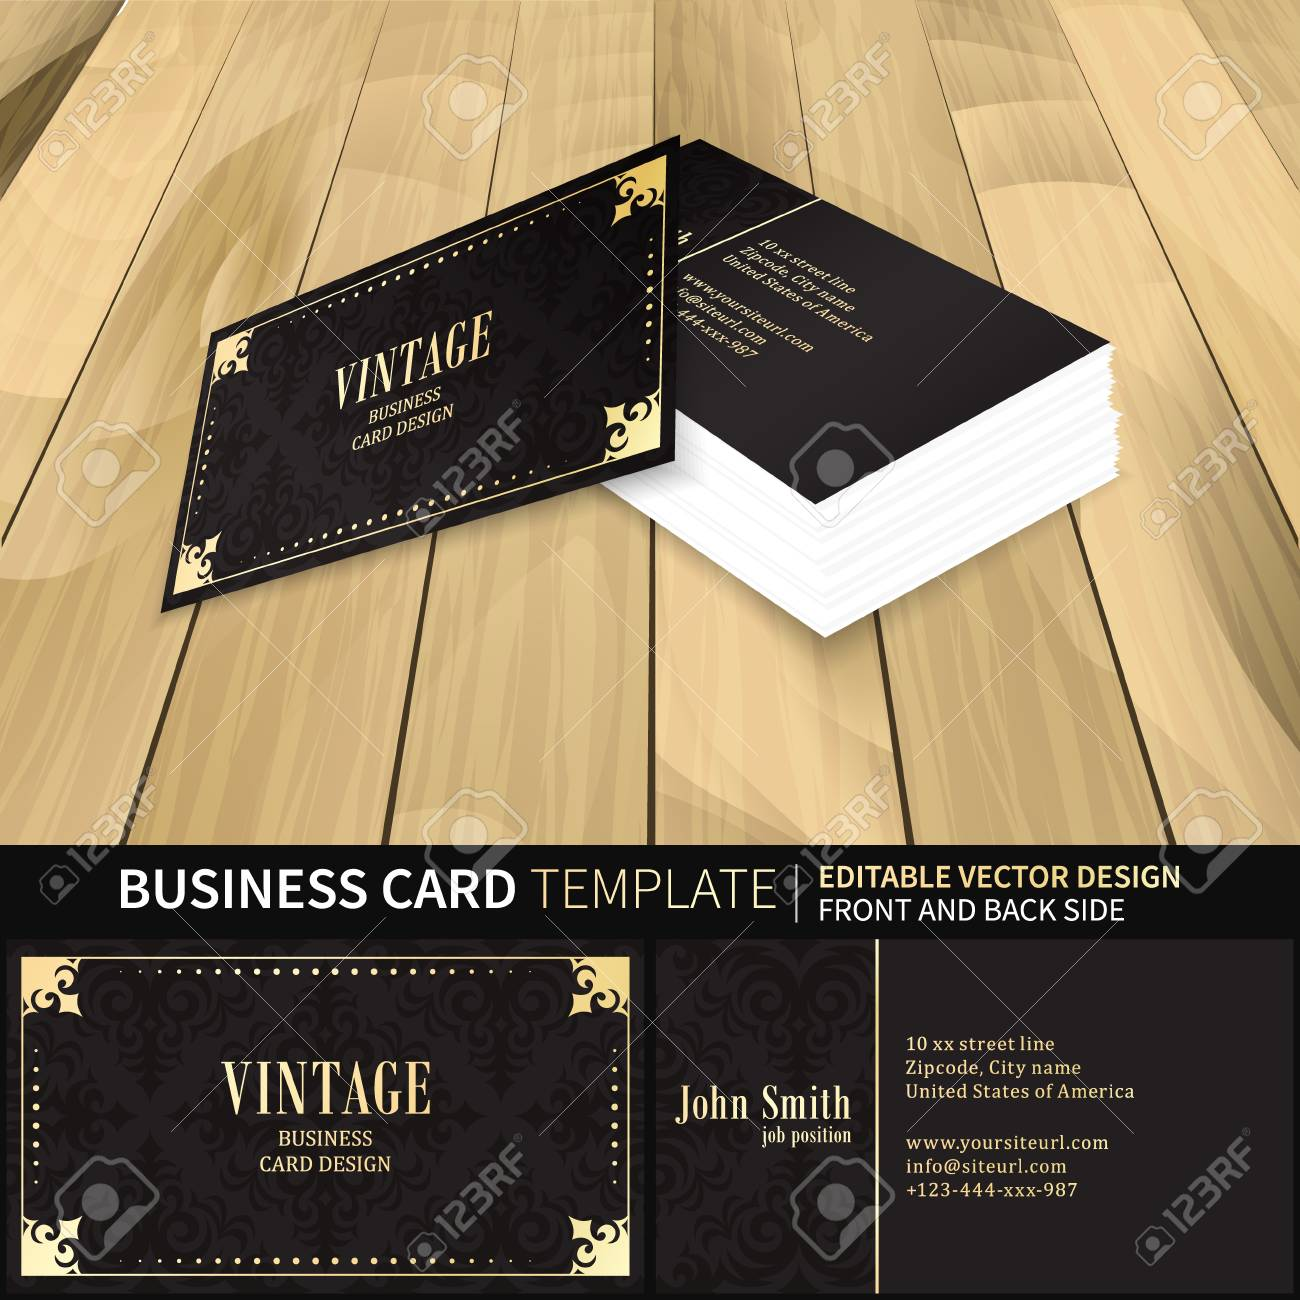 Vintage business card template with front and back side royalty vector vintage business card template with front and back side wajeb Choice Image